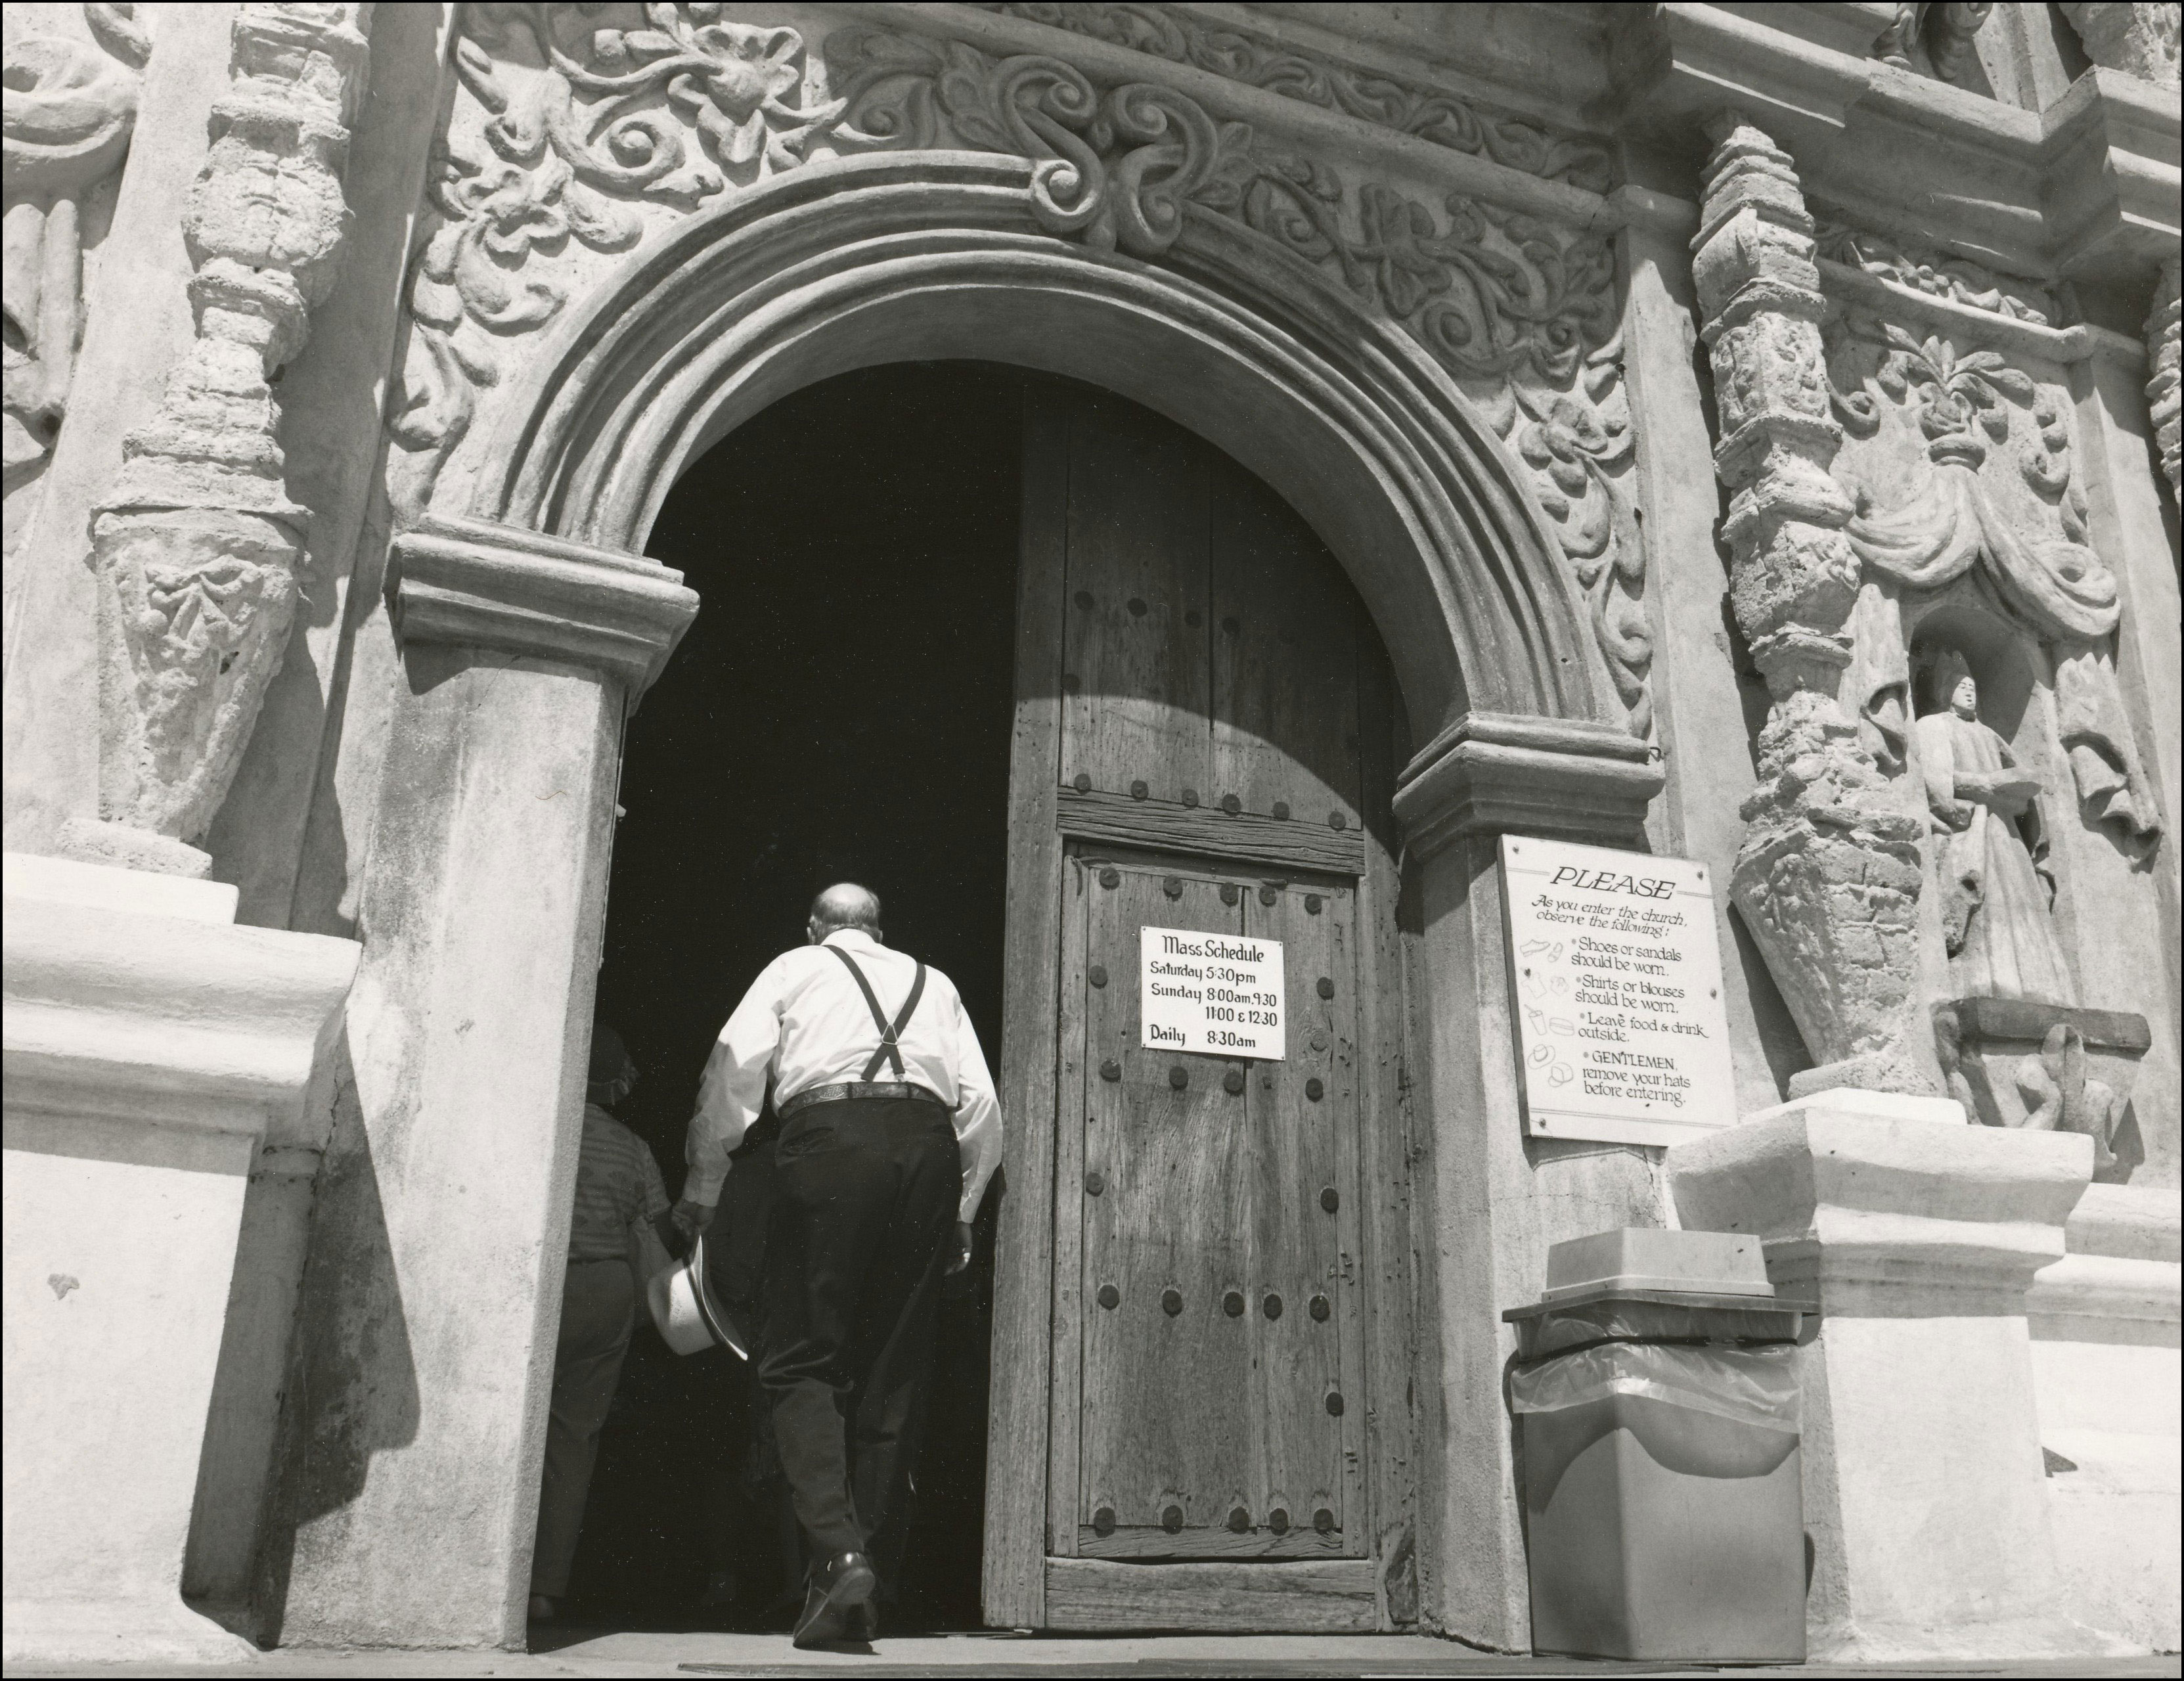 Man walking into the door of a sanctuary